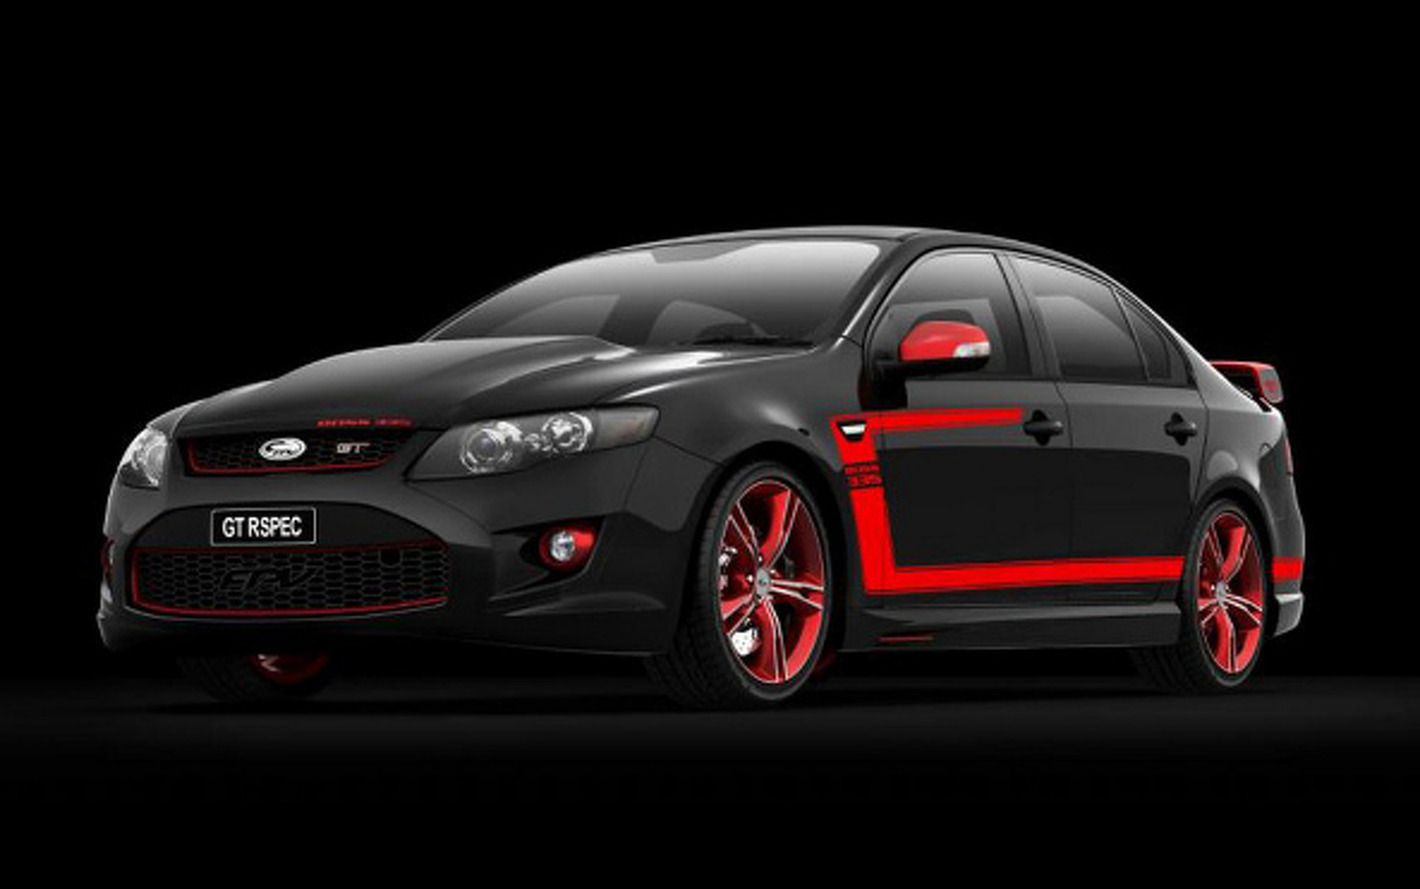 Aussie Muscle: 2012 Ford Falcon FPV GT RSpec